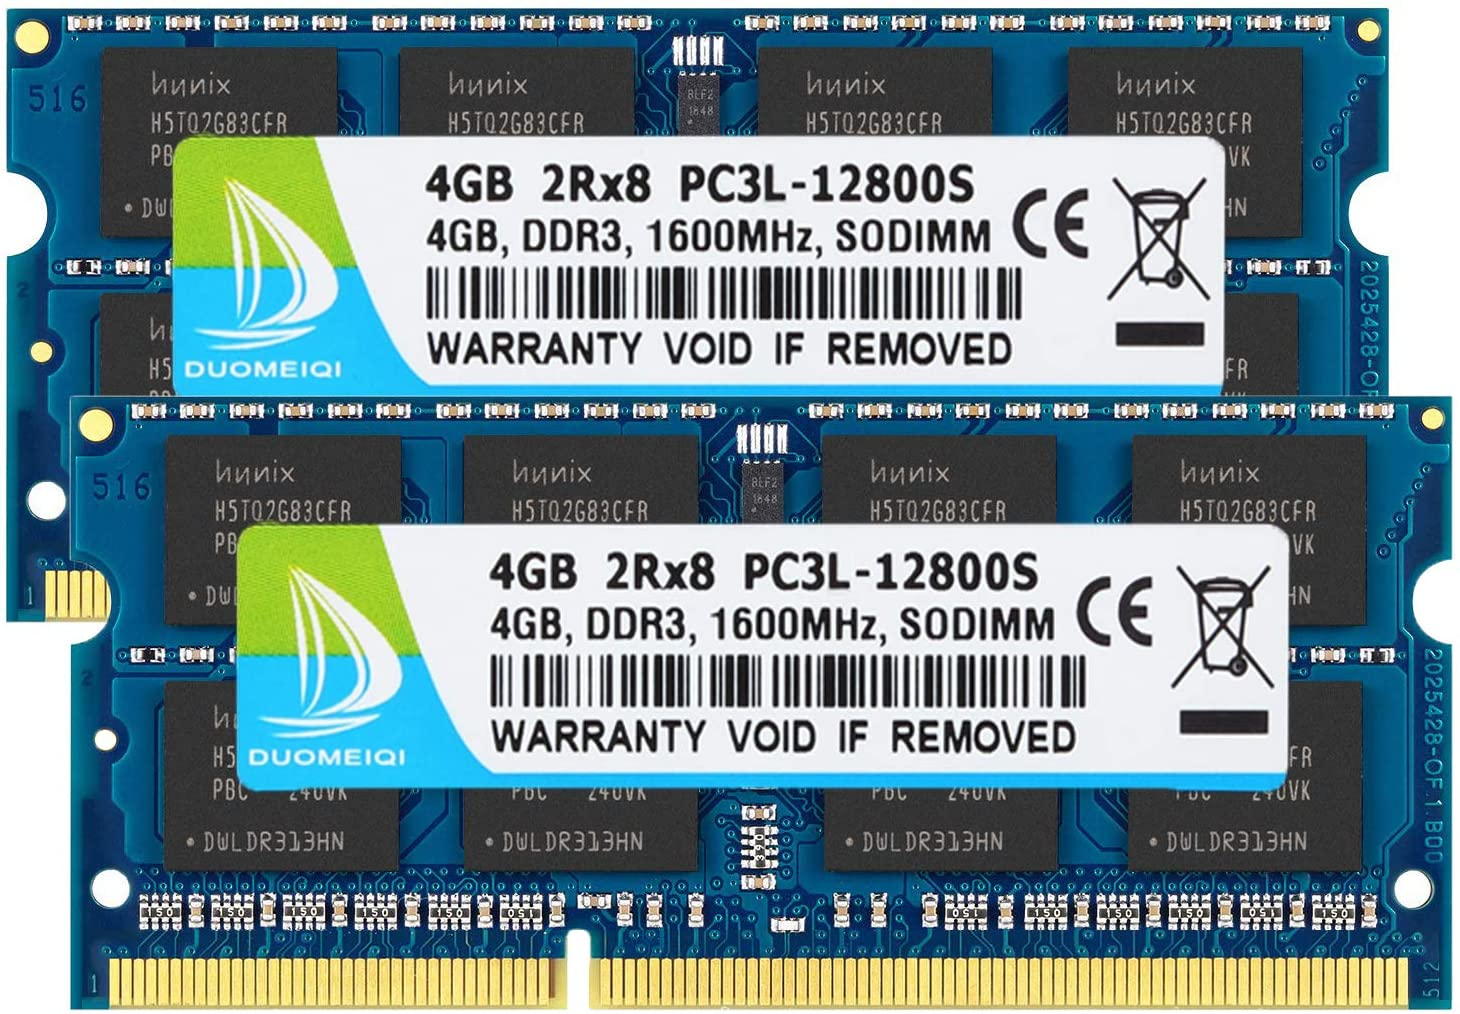 DUOMEIQI 8GB Kit (2 X 4GB) 2RX8 PC3L / PC3-12800 PC3L / PC3-12800S DDR3L/DDR3 1600MHz SO-DIMM CL11 204 Pin 1.35v / 1.5v Notebook Memory Laptop RAM Non-ECC Unbuffered for Intel, AMD & Mac Computer